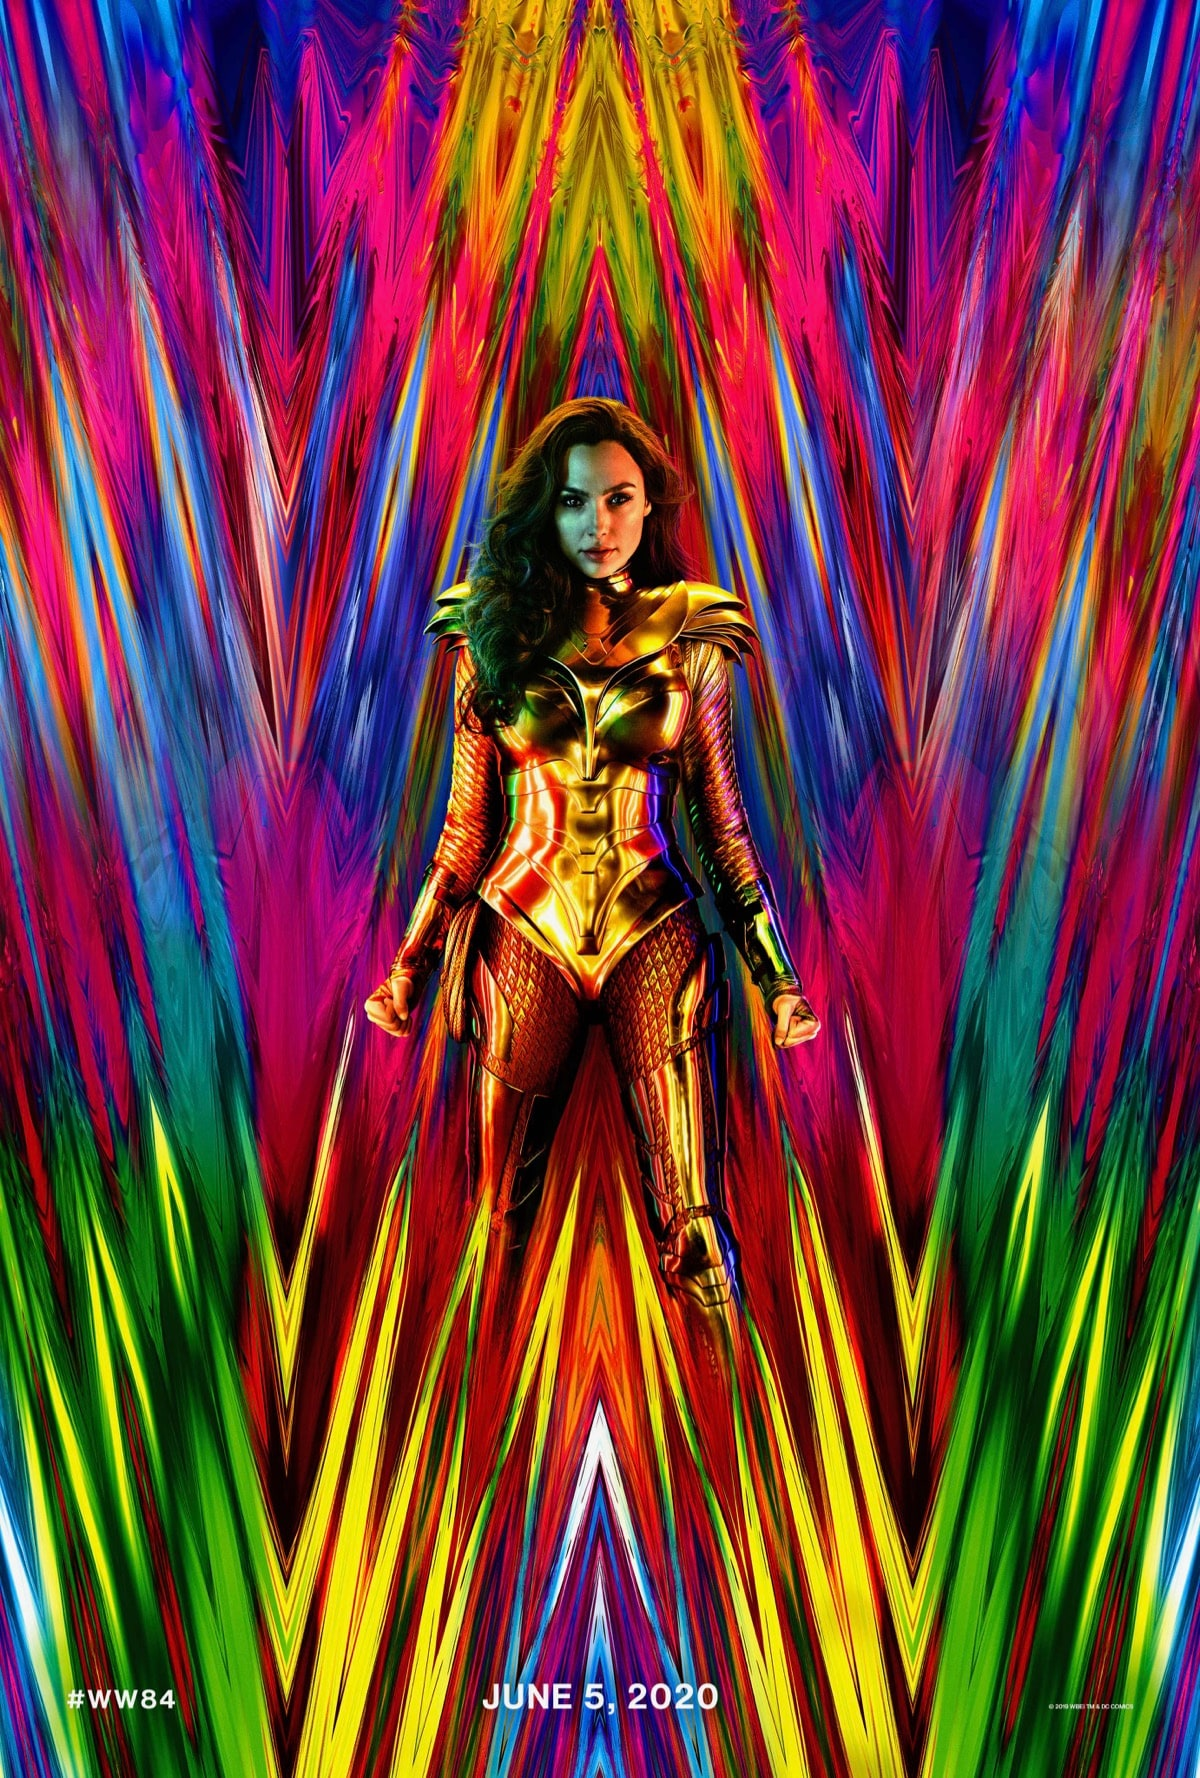 Wonder Woman 1984 Poster Shows Off Gal Gadots New Gold Costume 1200x1778